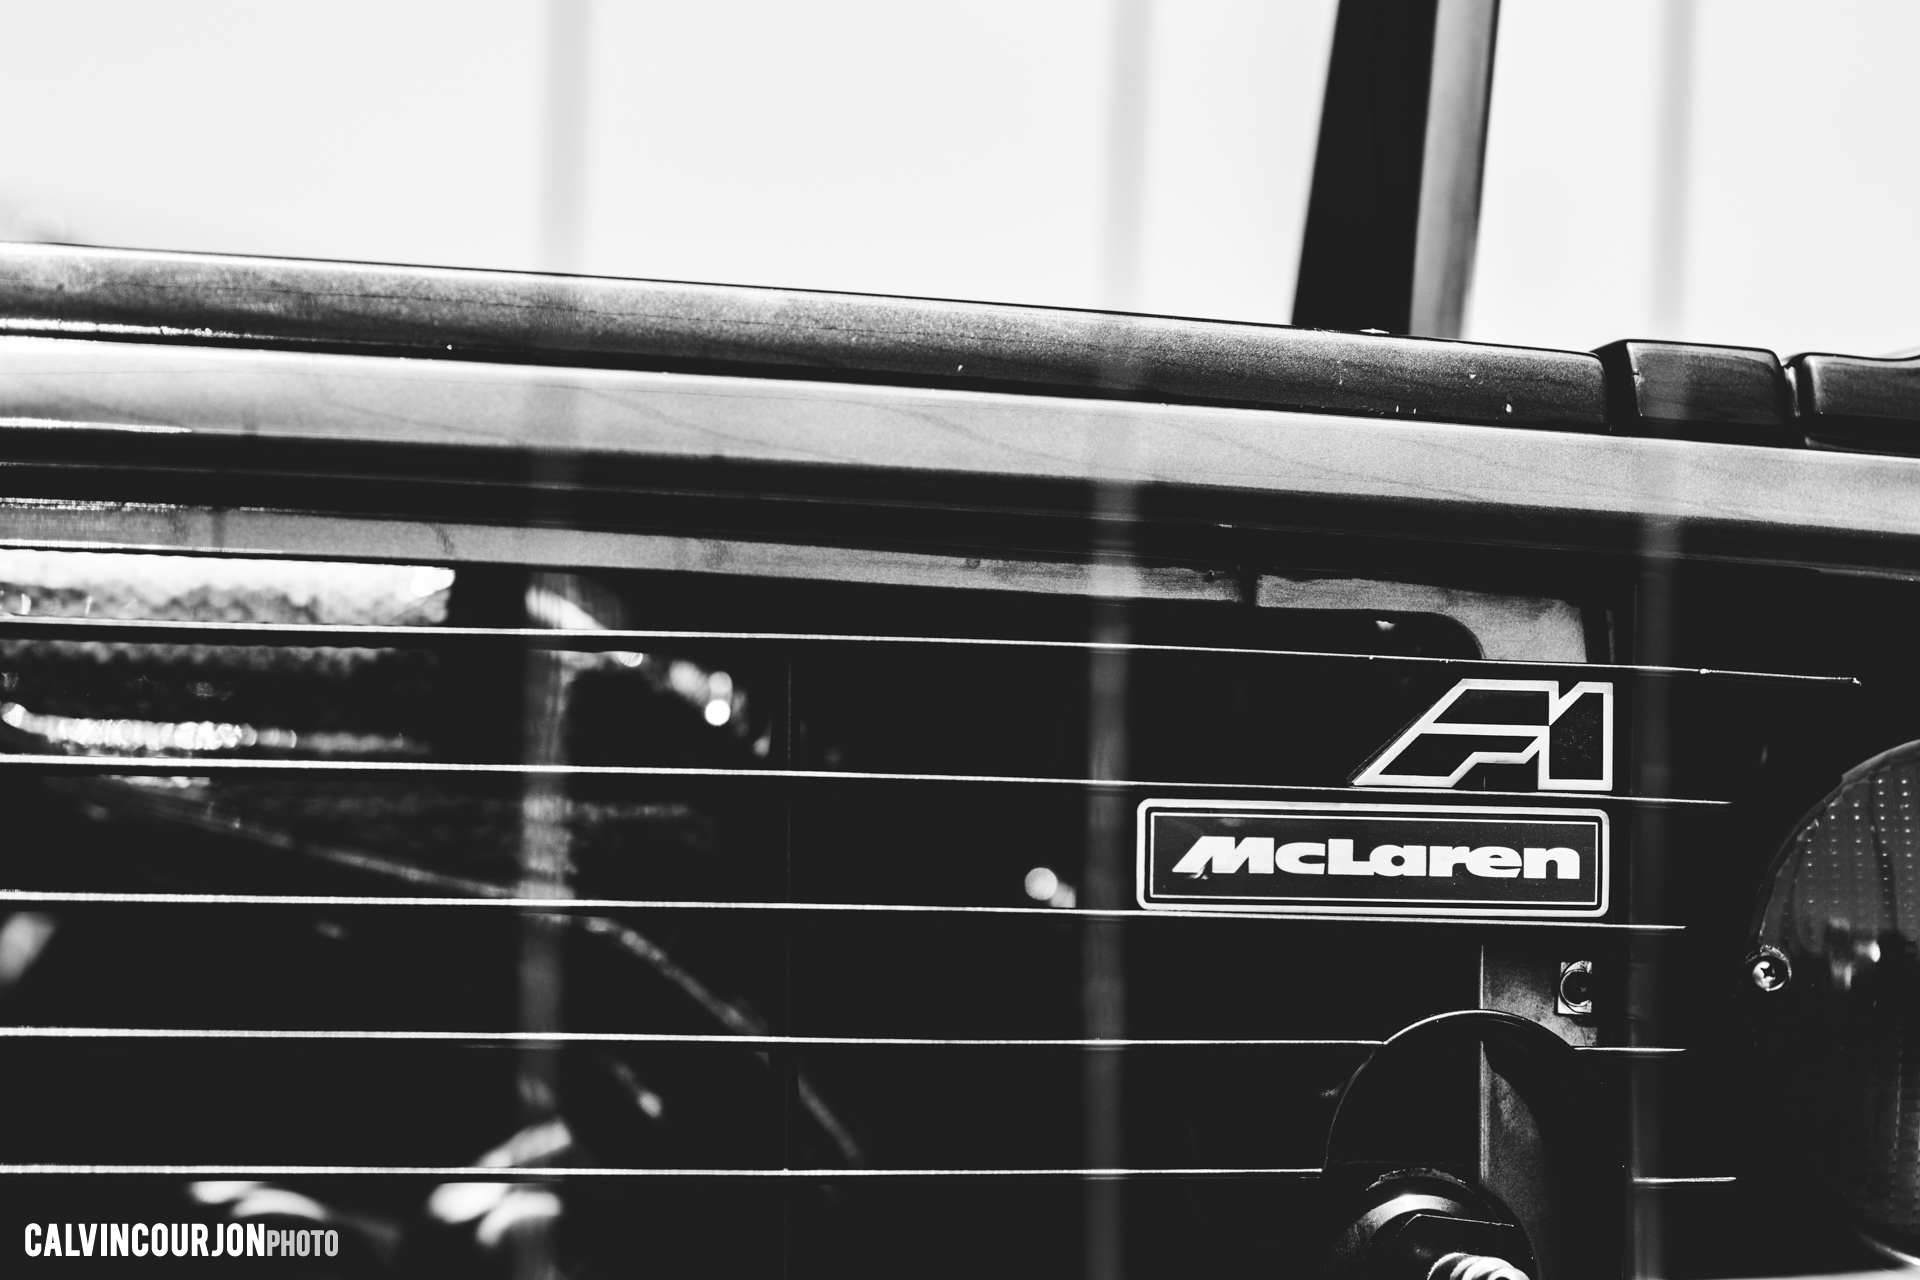 McLaren F1 road-car (1994) logo - 2015 - photo Calvin Courjon